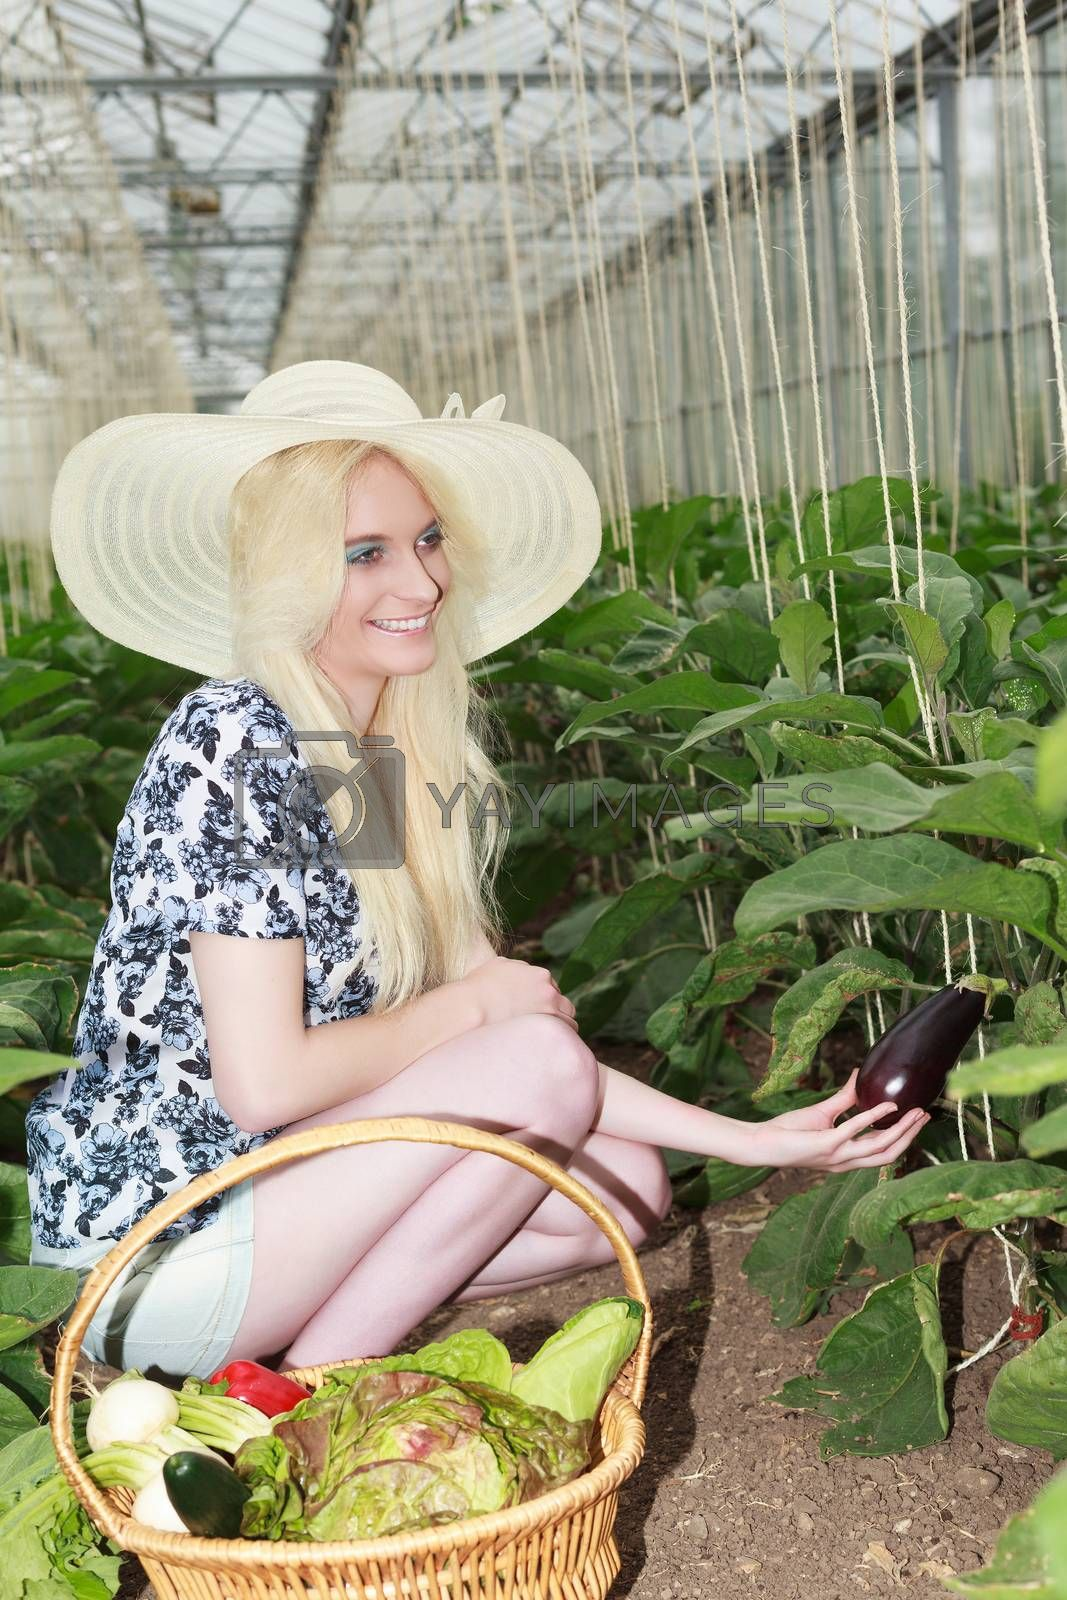 Stylish Blond Young Woman Wearing Straw Hat, Harvesting Healthy Fresh Vegetables In the Farm with Happy Facial Expression.